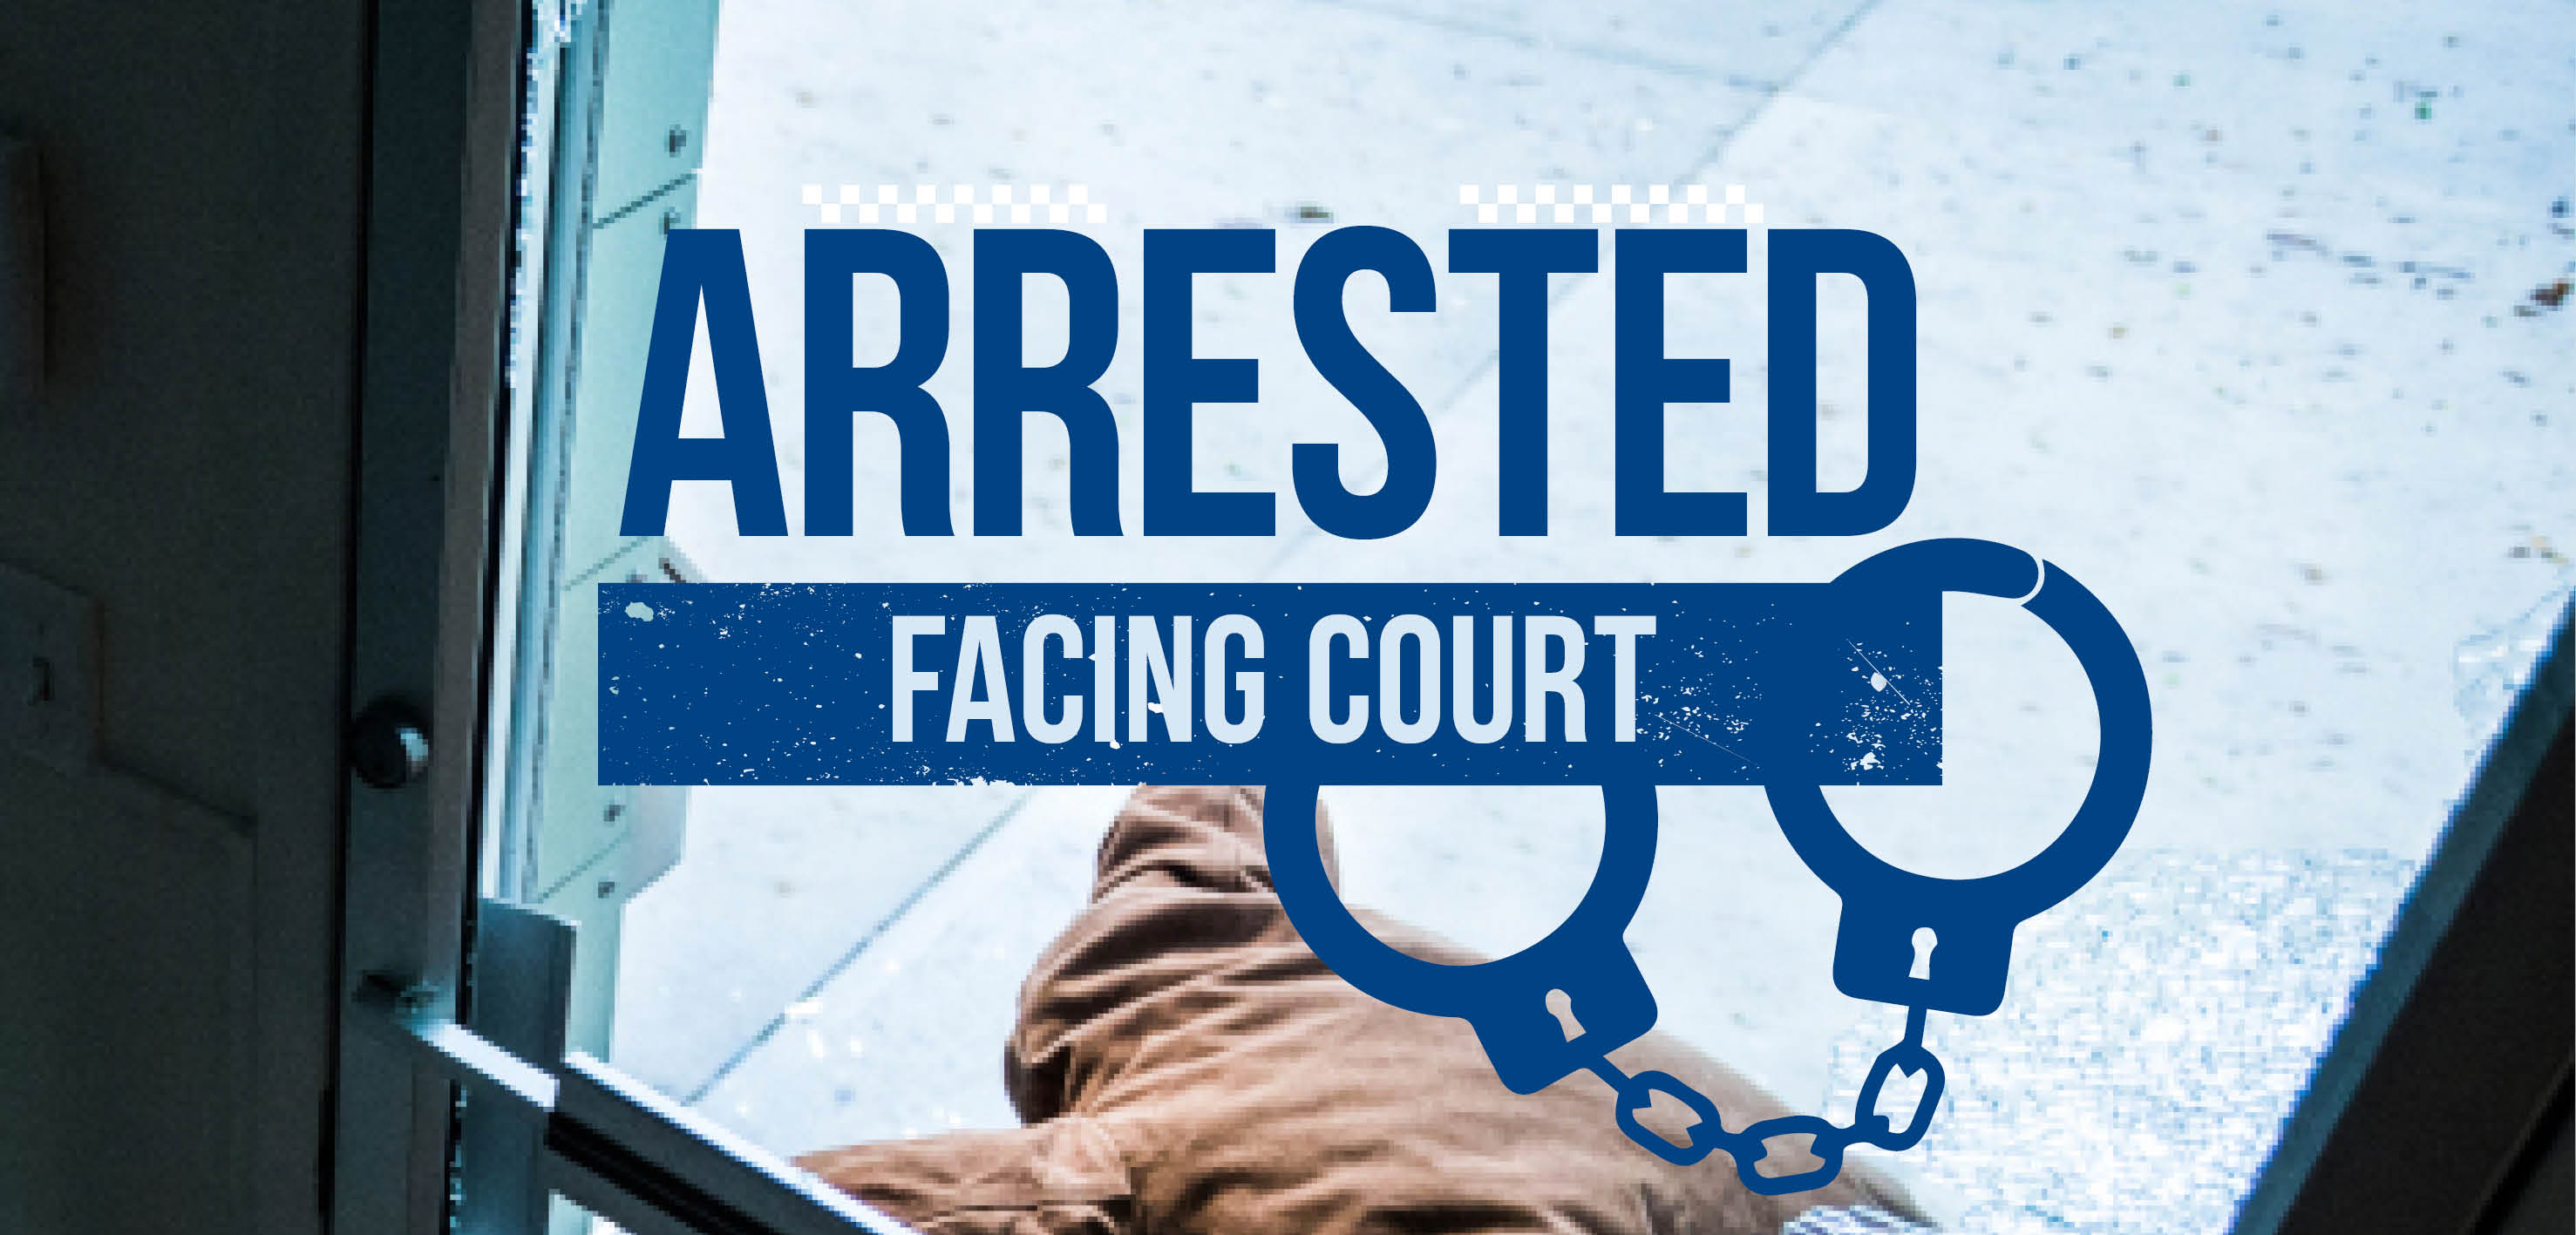 Arrested - facing court.jpg